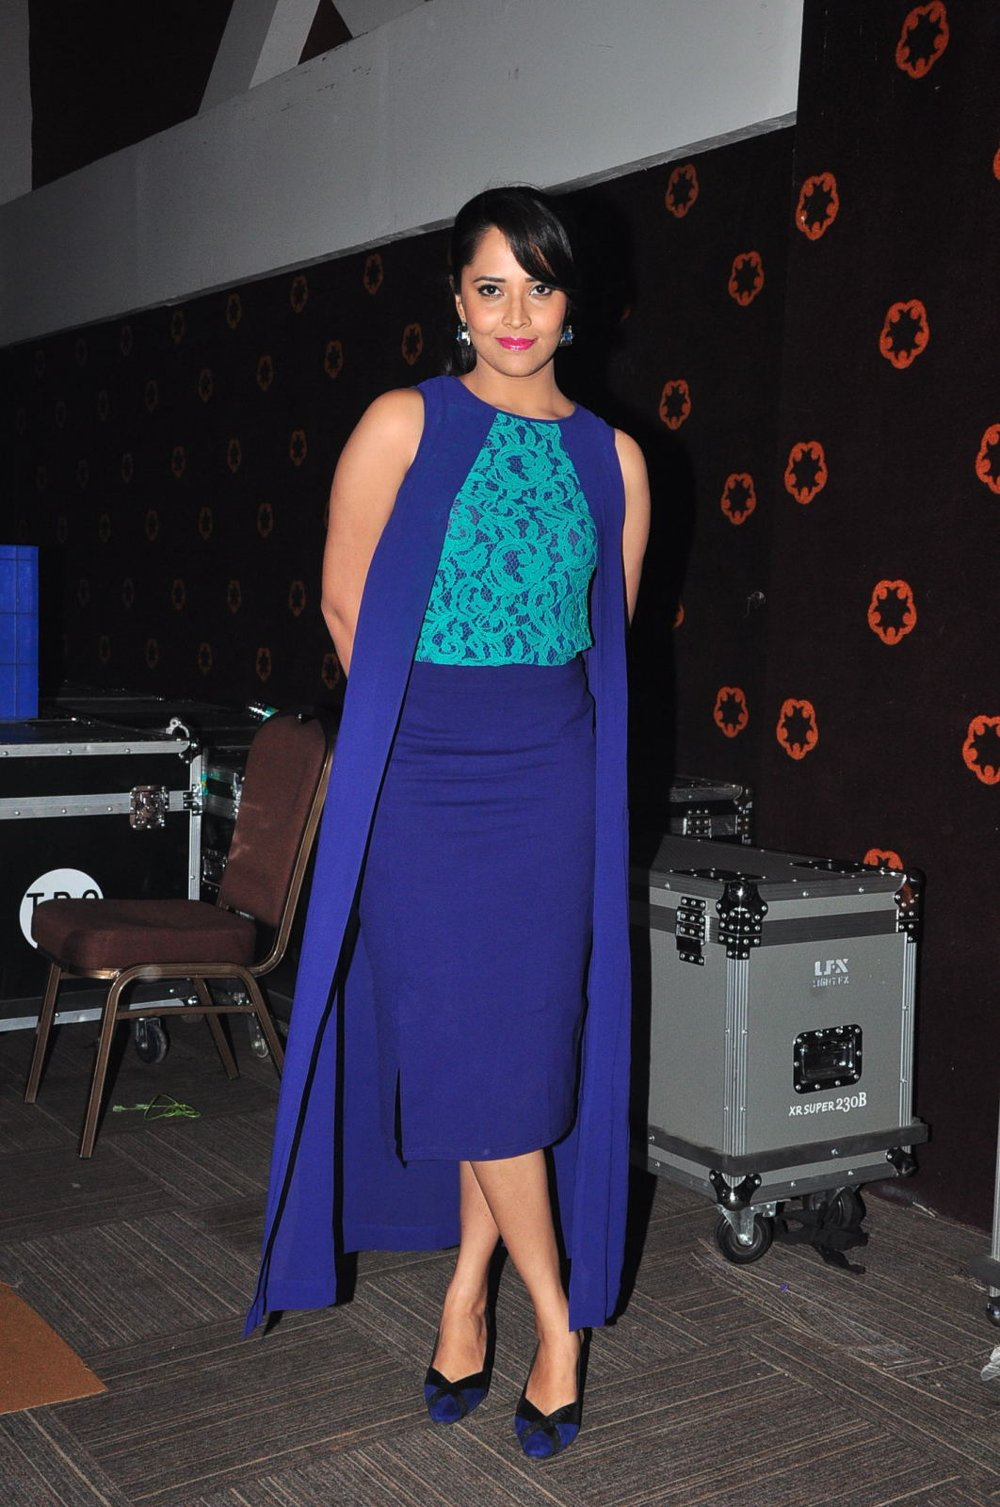 Glamorous Anasuya Photoshoot In Blue Dress